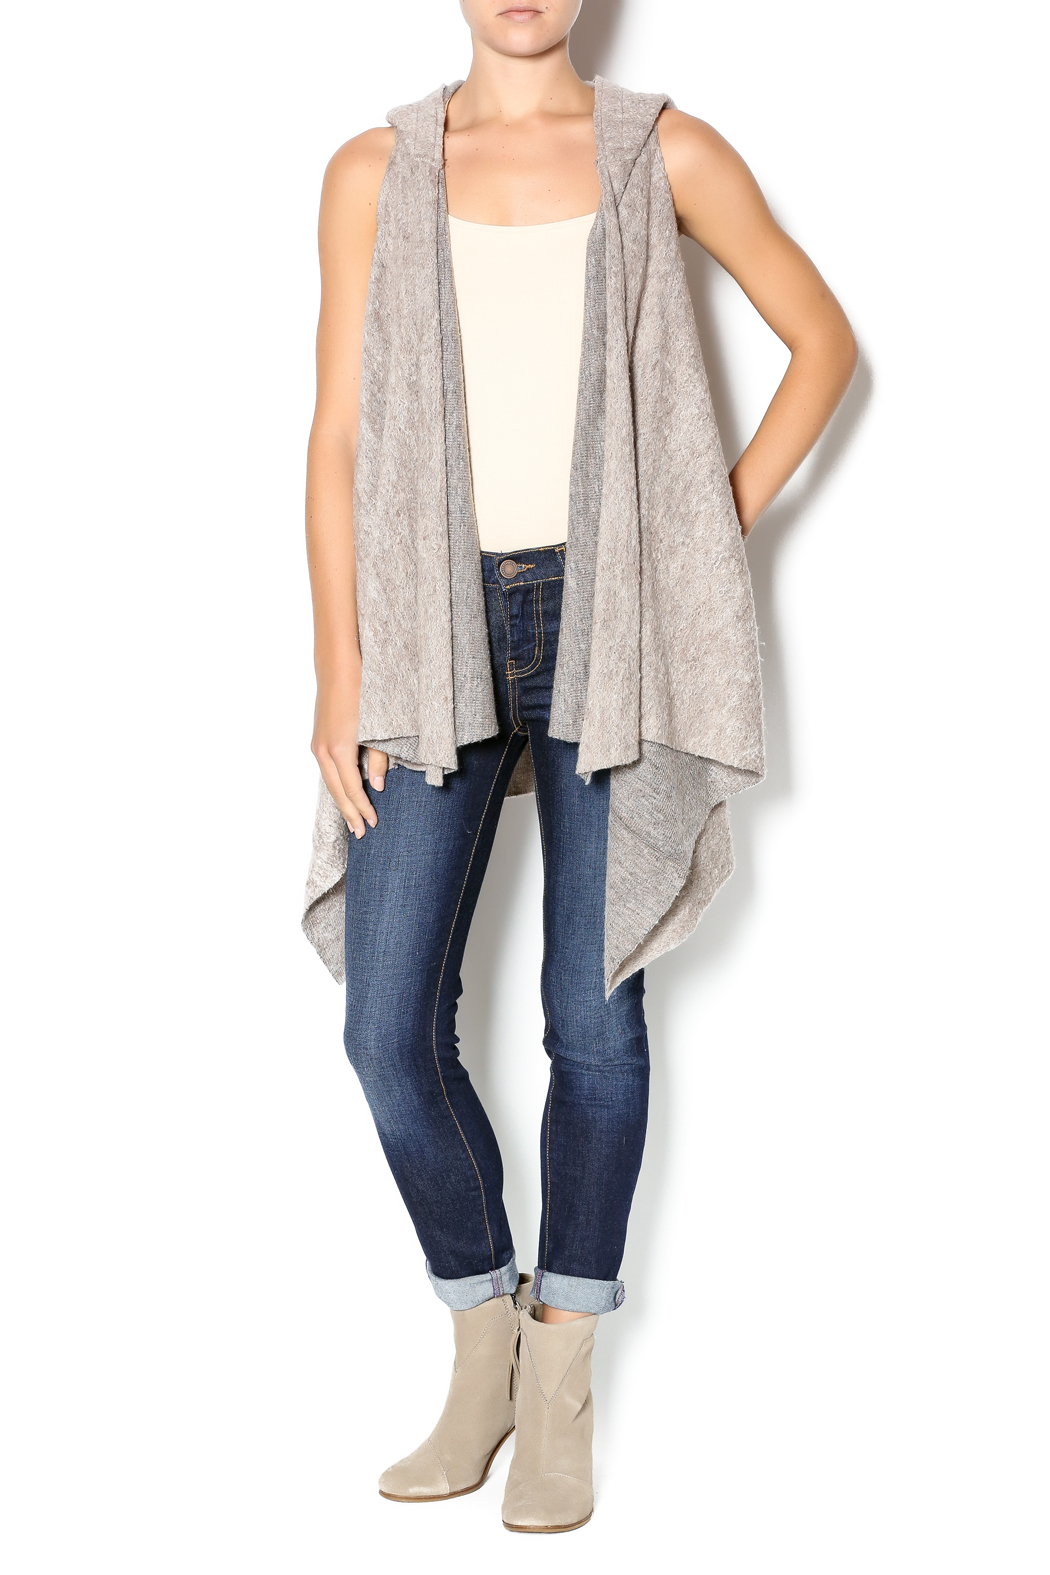 Hazel Hooded Long Vest from Syracuse by Steph Boutique ...